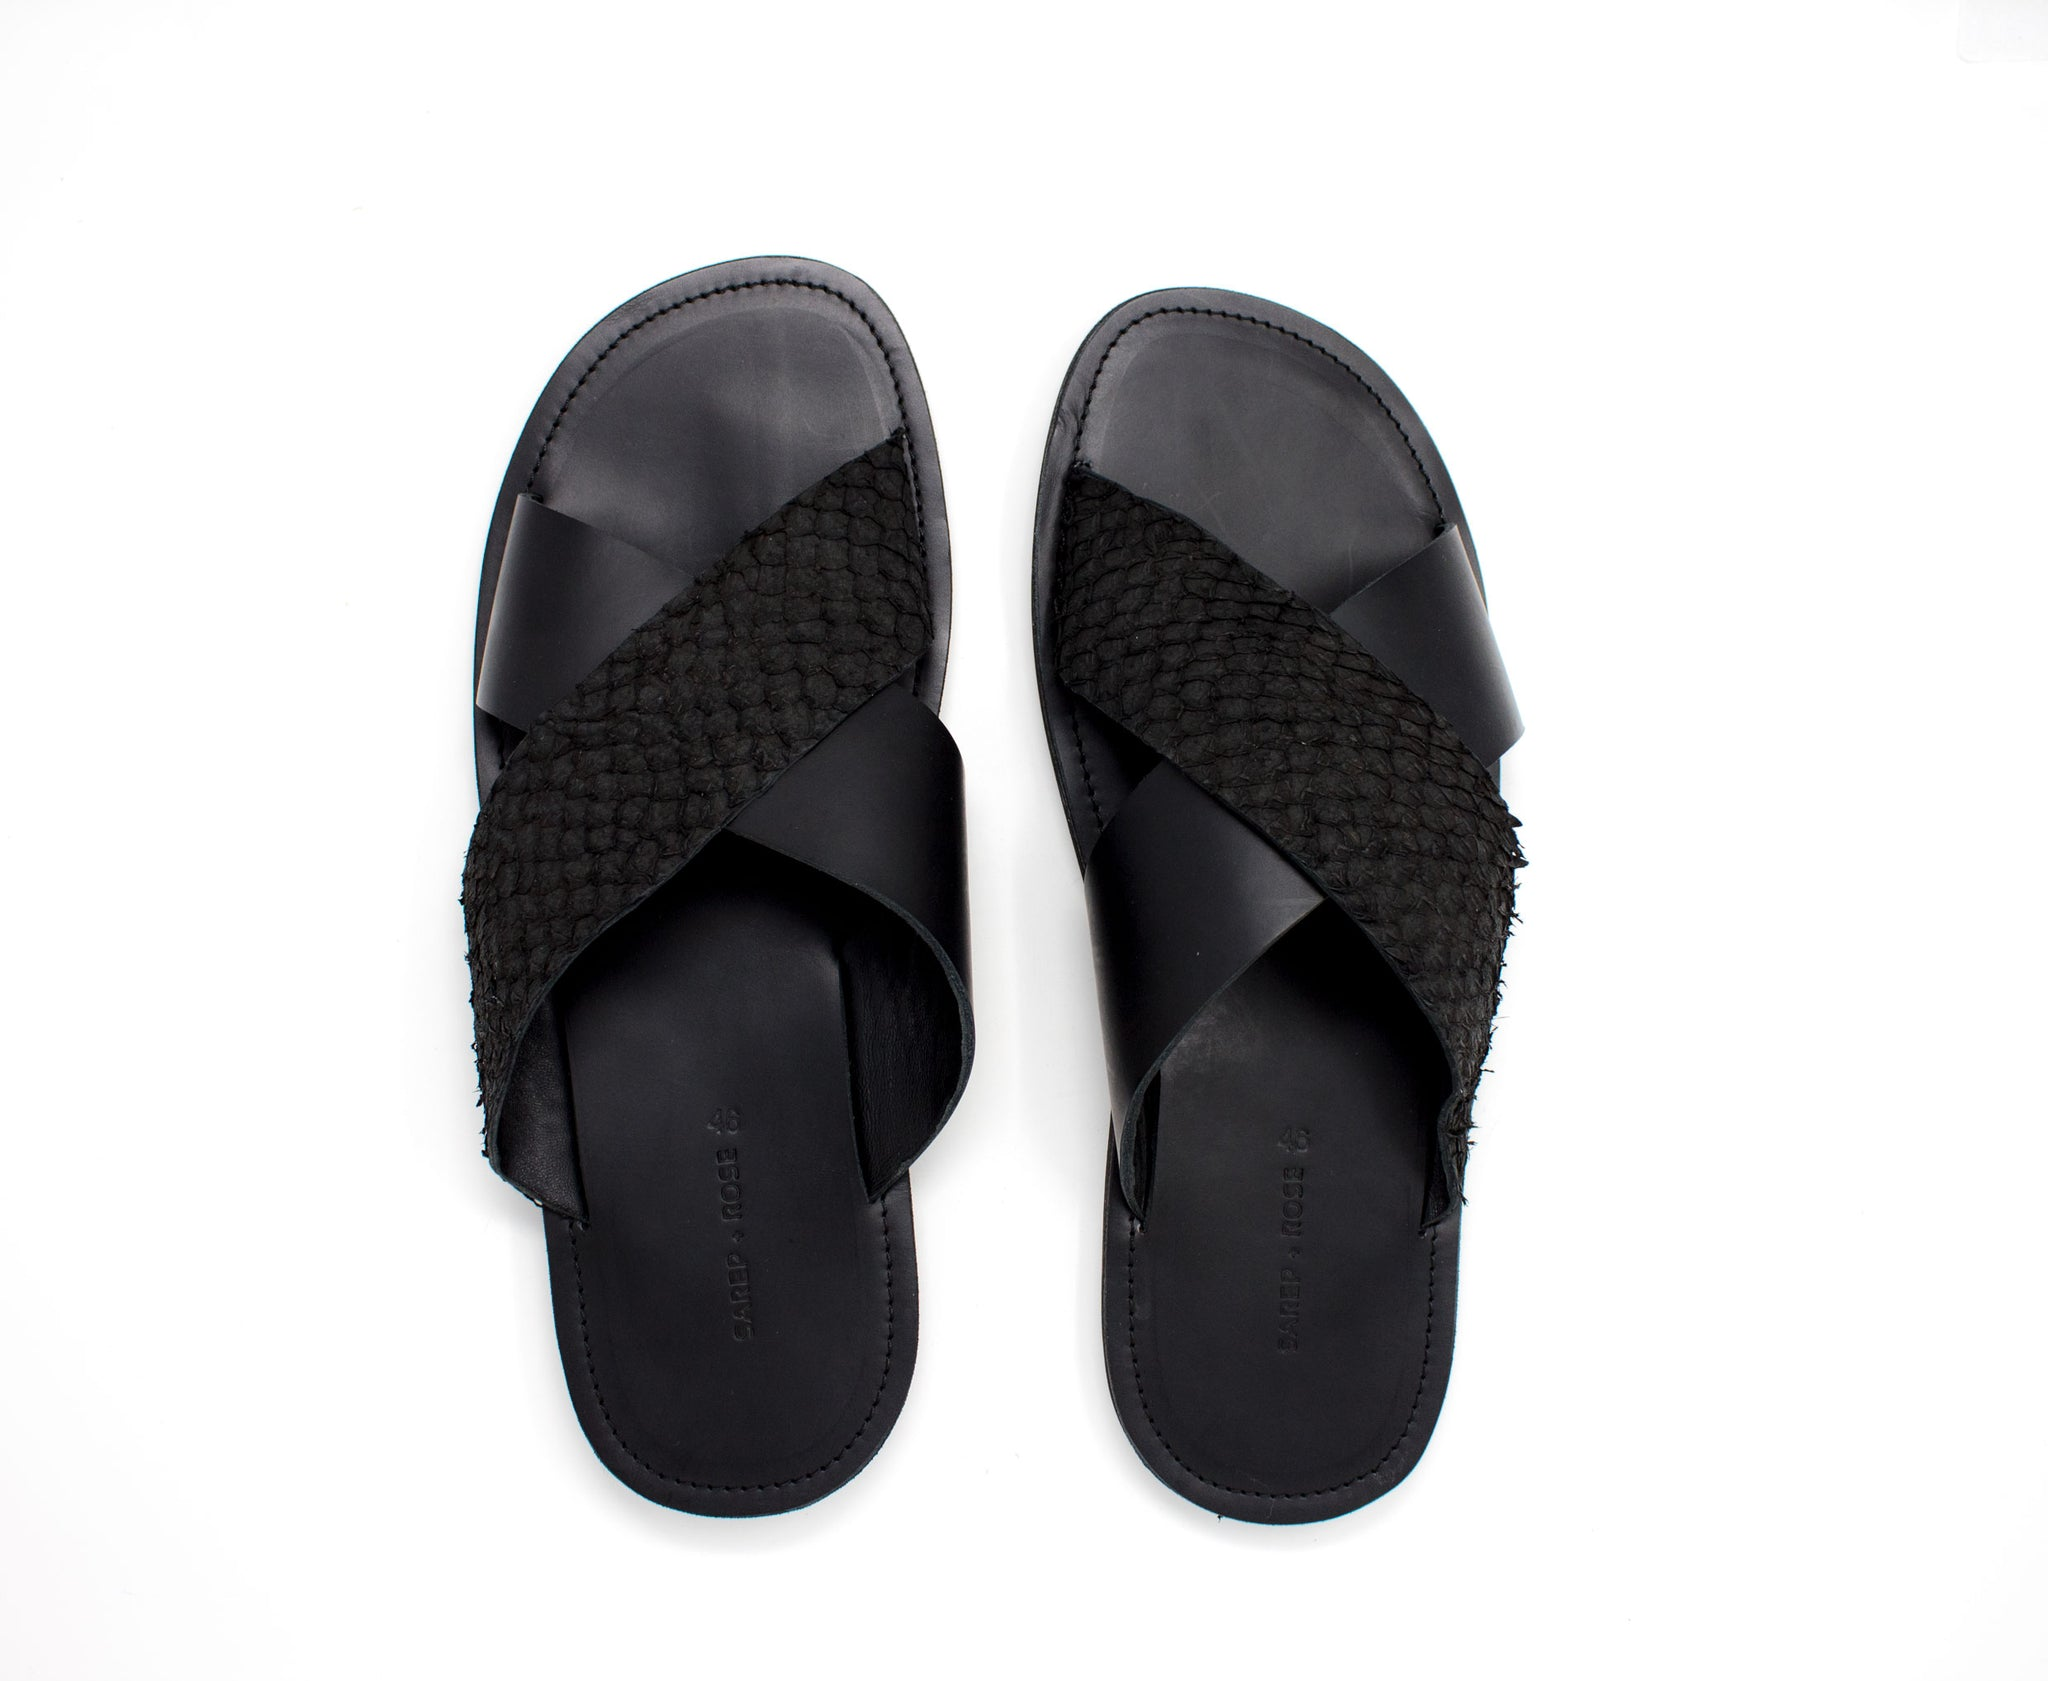 Fishskin Leather Sandal: Black on Black